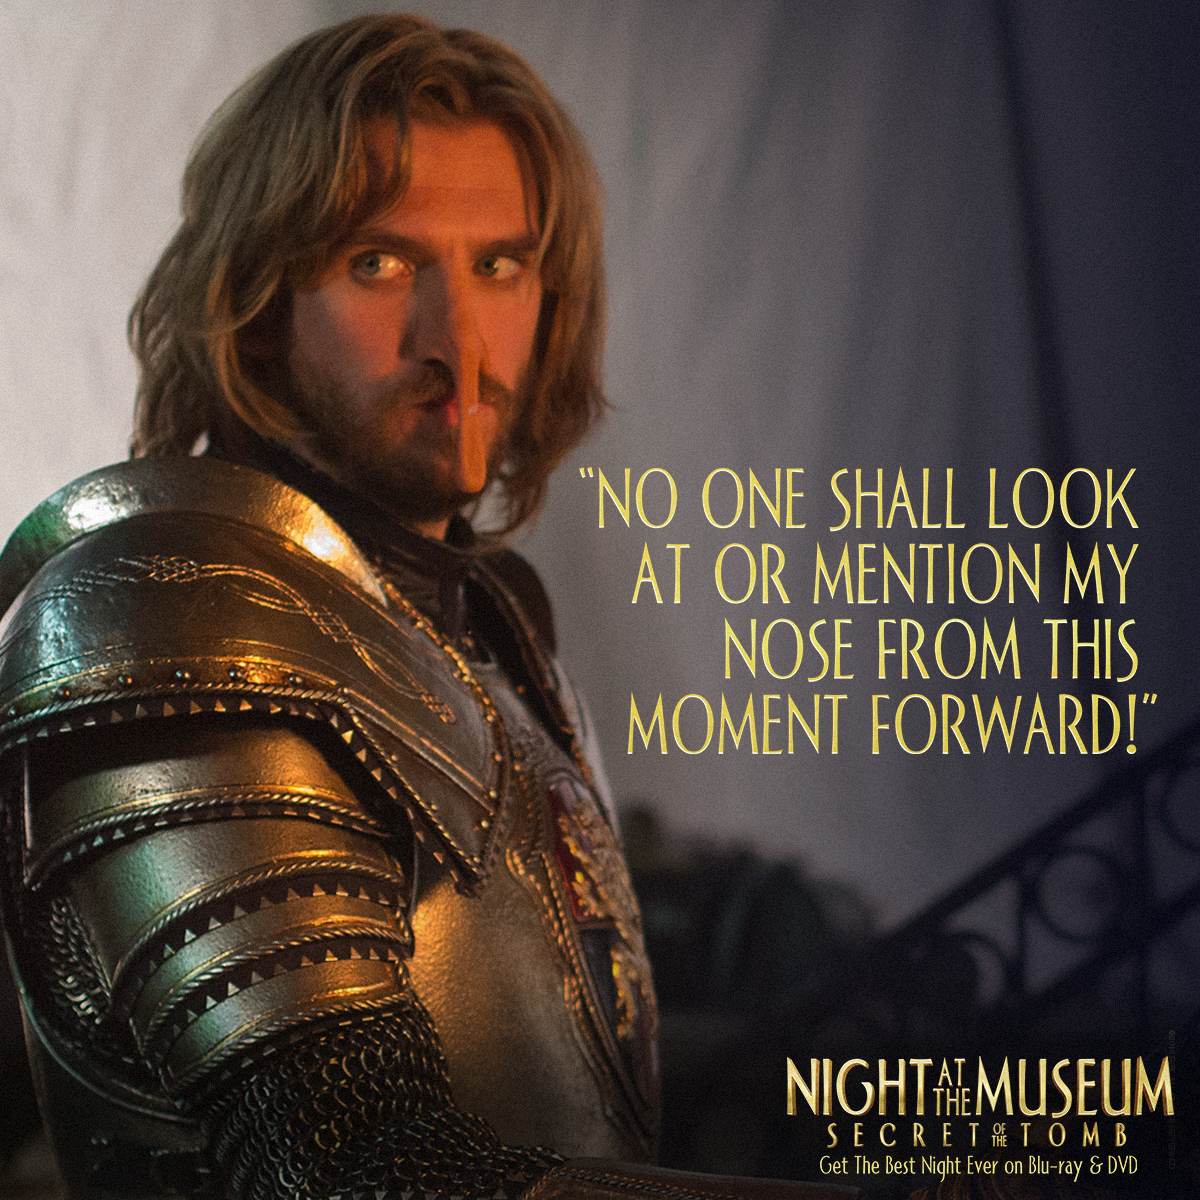 Night at the museum 3 cast sir lancelot : Integrale dvd